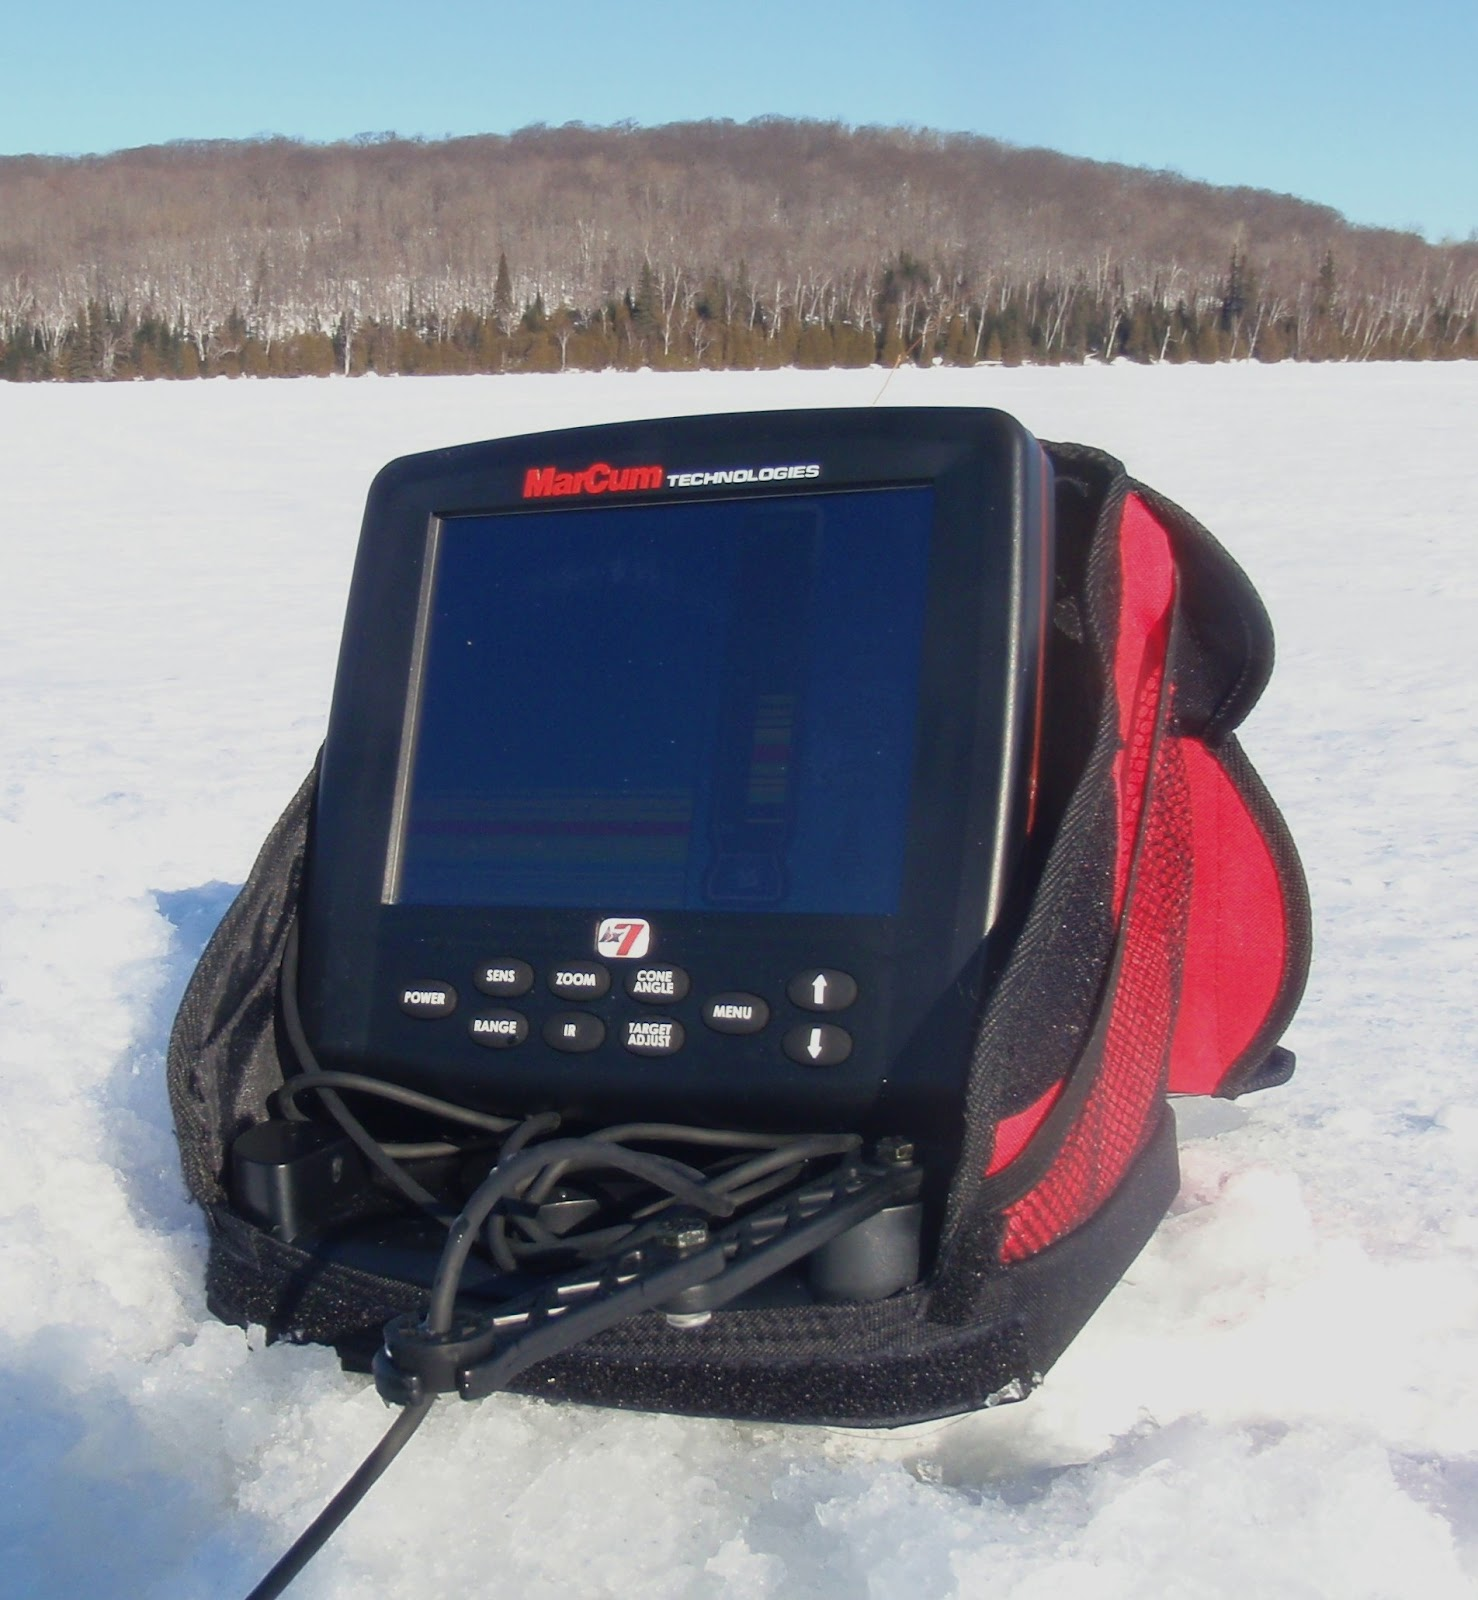 Bass junkies fishing addiction the rise of the marcum lx7 for Best ice fishing flasher